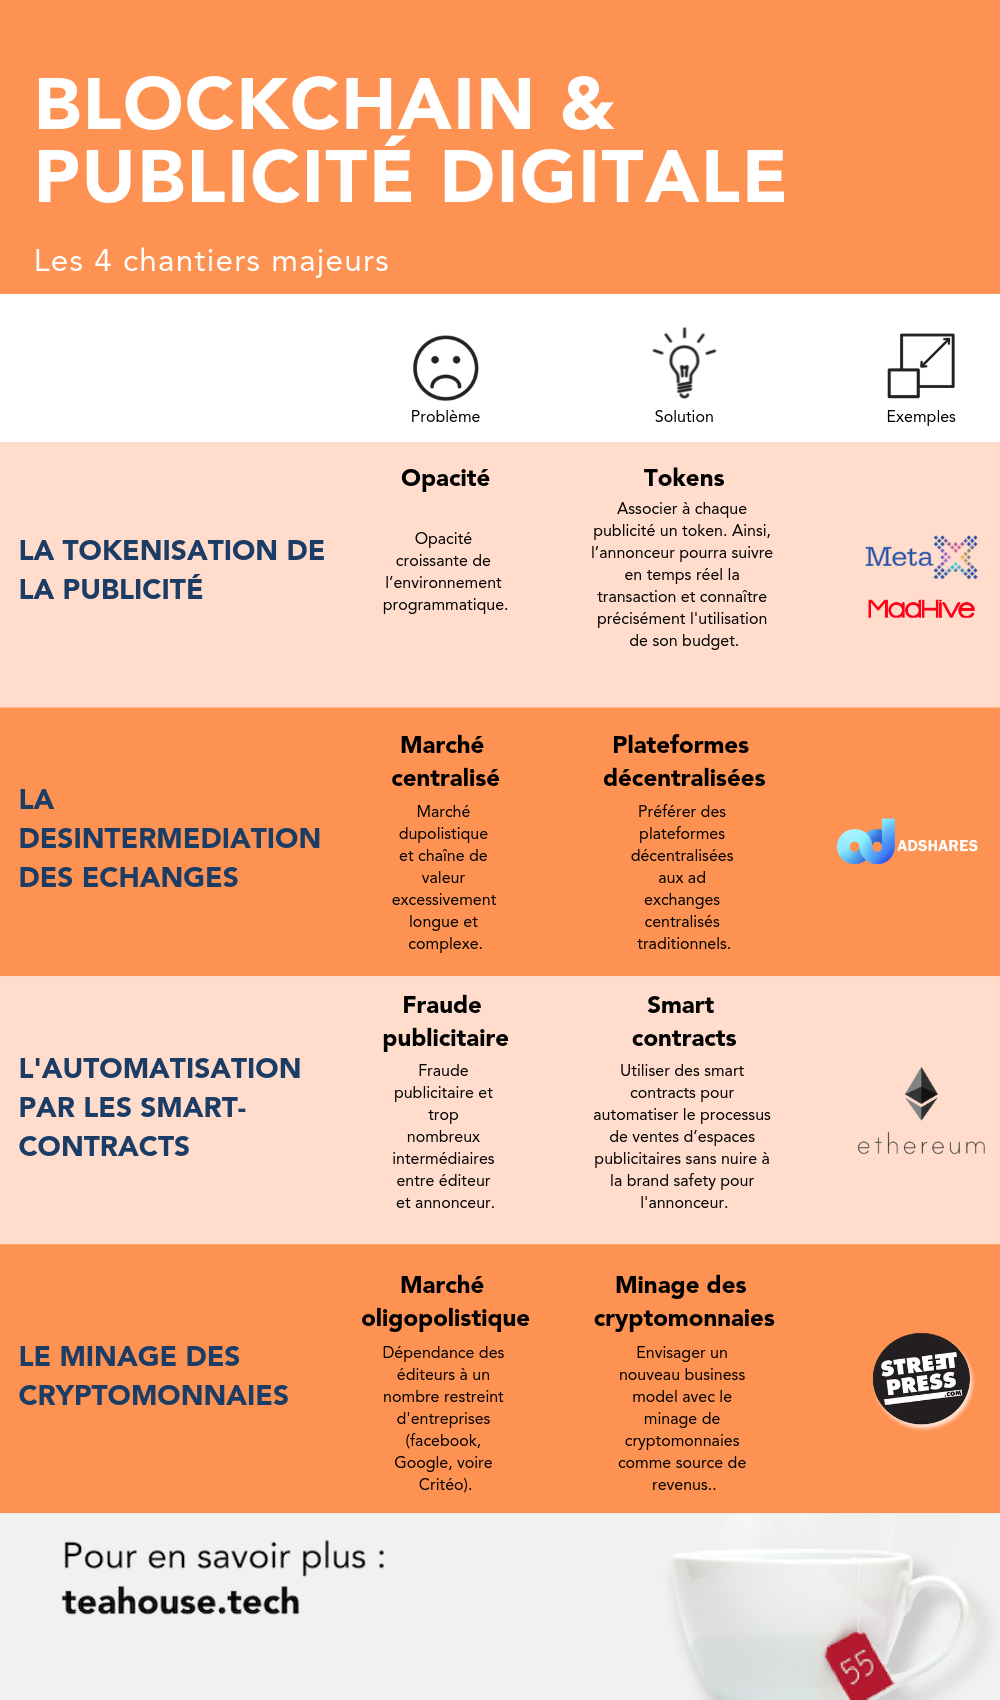 blockchain-et-publicite-digitale